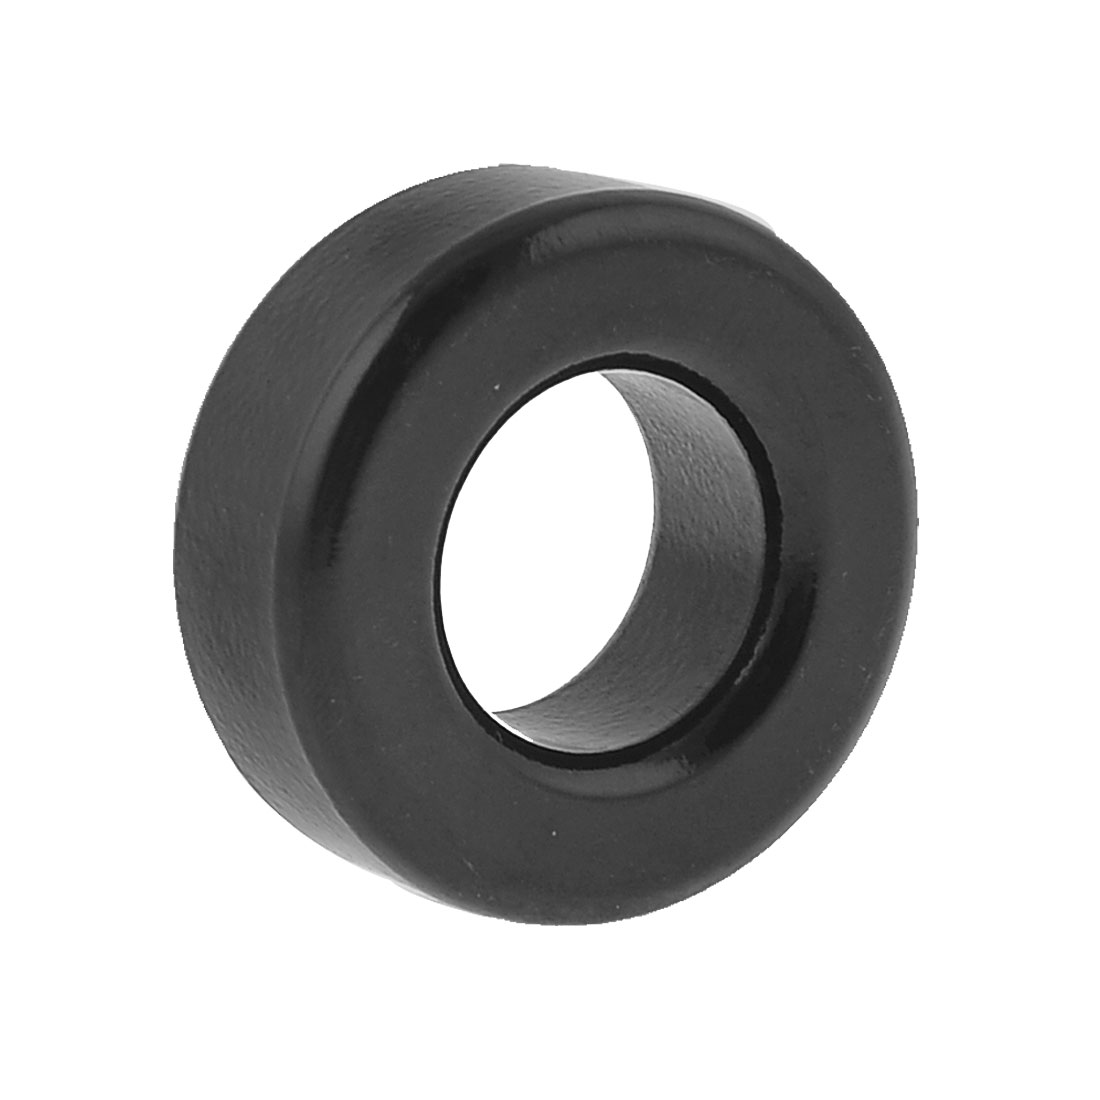 Black Iron Core Power Inductor Ferrite Ring Toroid 47x24x18mm AS184-125A